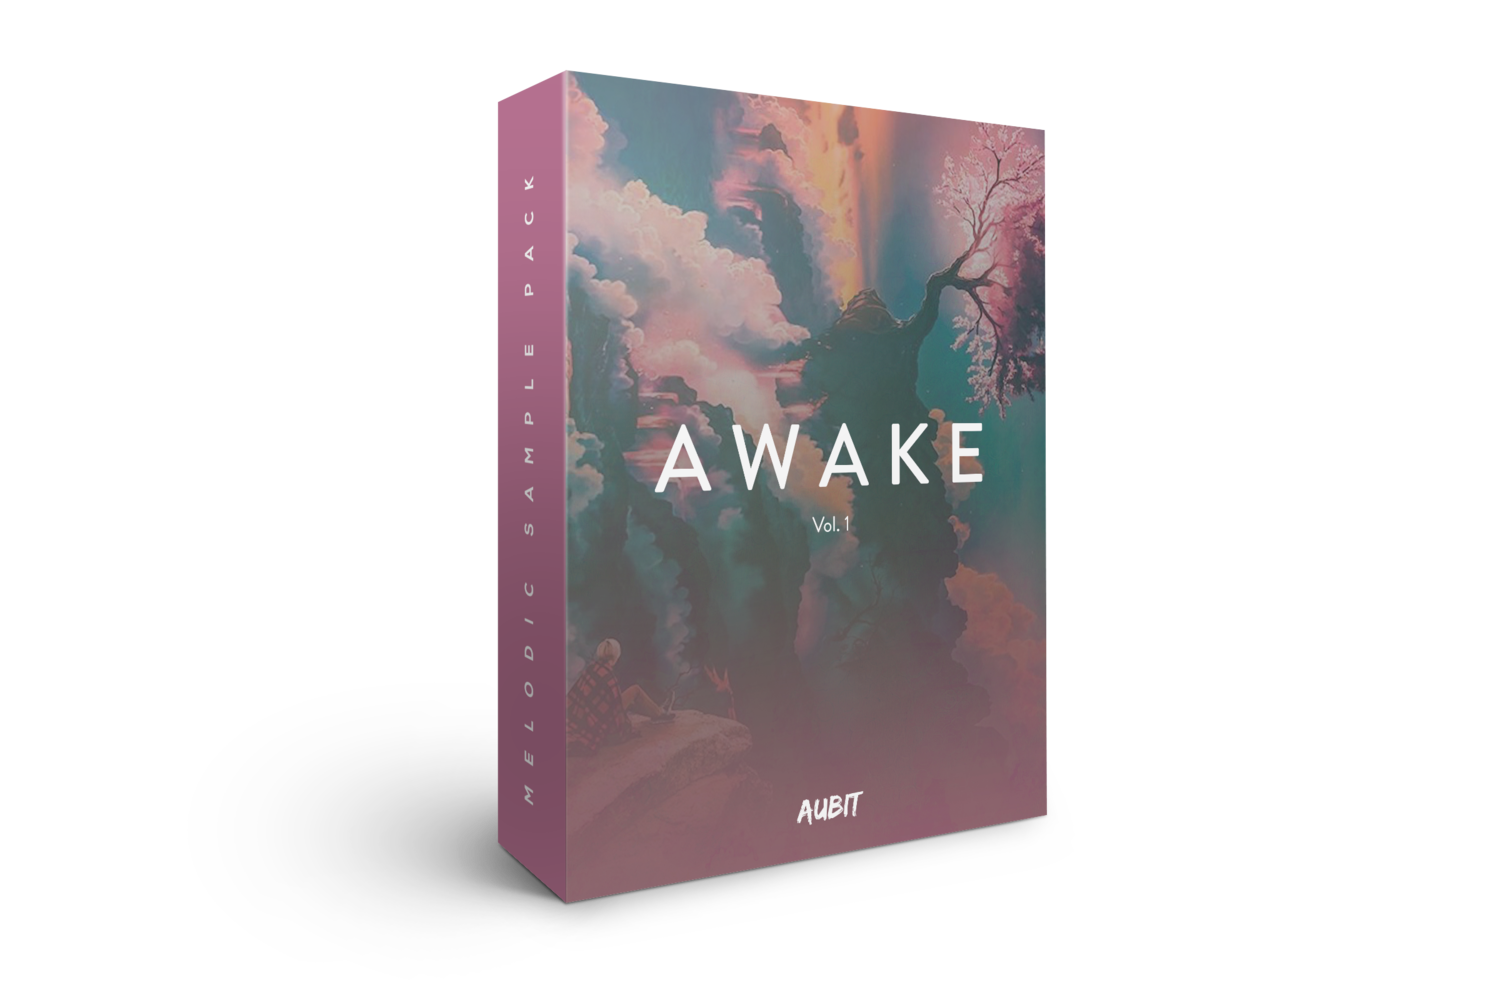 Awake Vol  1 — aubitsound